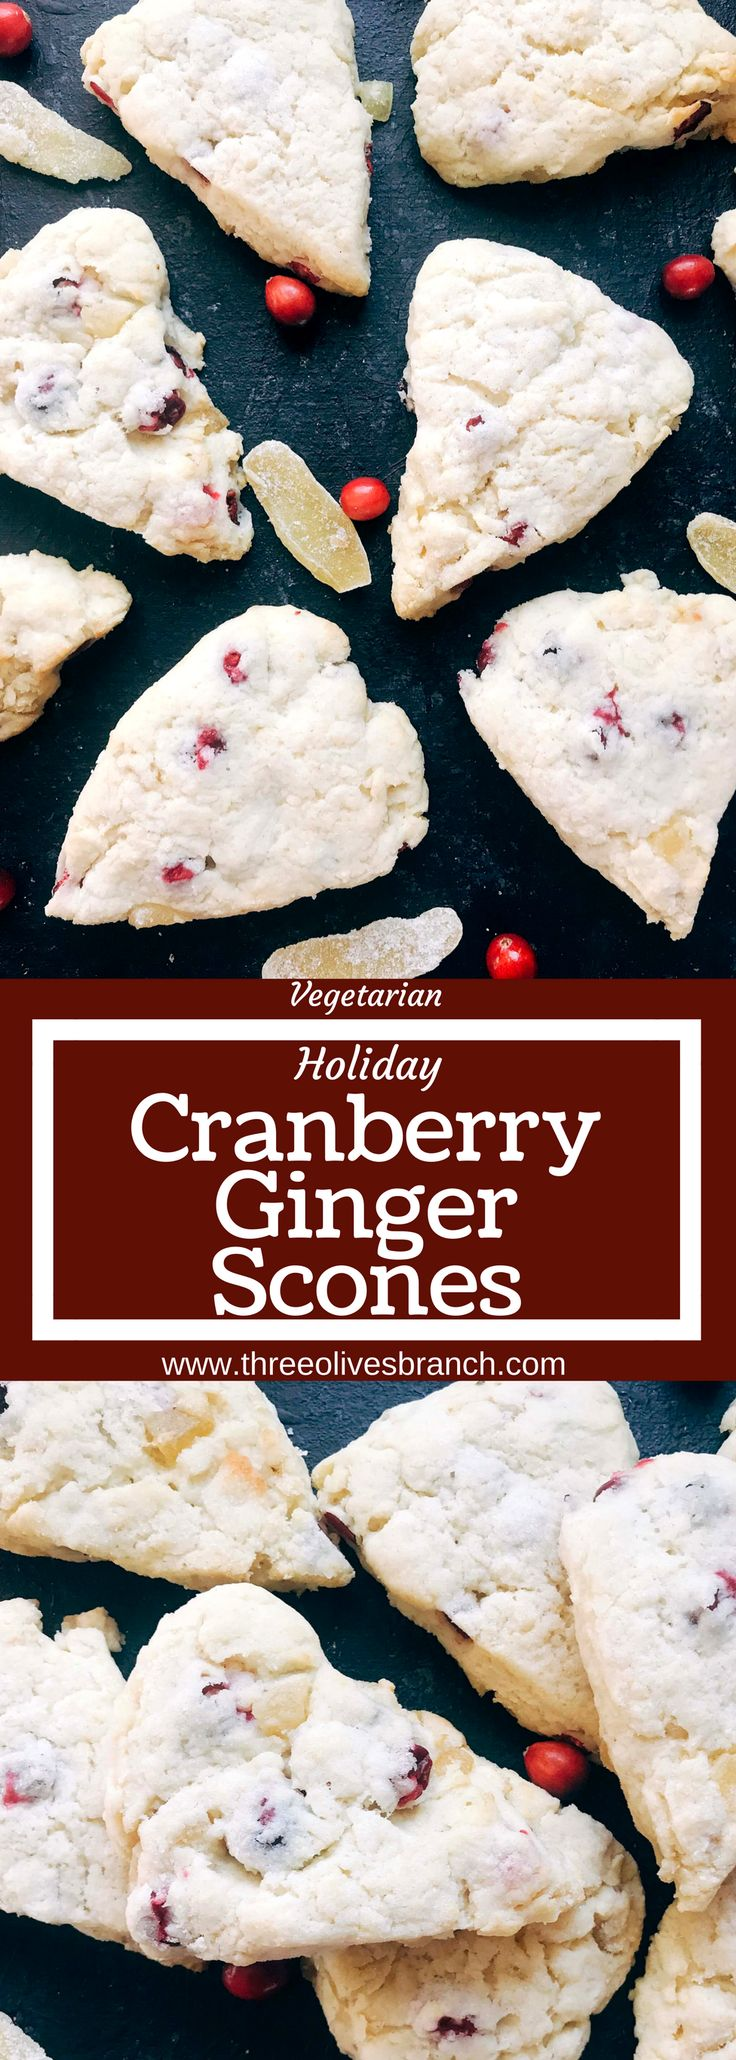 Classic holiday flavors in a scone. Fresh or frozen cranberries and crystallized ginger are mixed in a scone recipe for a breakfast or brunch that is perfect for the holidays. Cranberries and ginger are perfect for Thanksgiving and Christmas. These scones can be easily frozen and baked as needed. Candied ginger brings a sweet and spicy flavor. Vegetarian. Cranberry Ginger Scones | Three Olives Branch | www.threeolivesbranch.com #christmasbreakfast #christmasbrunch #cranberryginger…